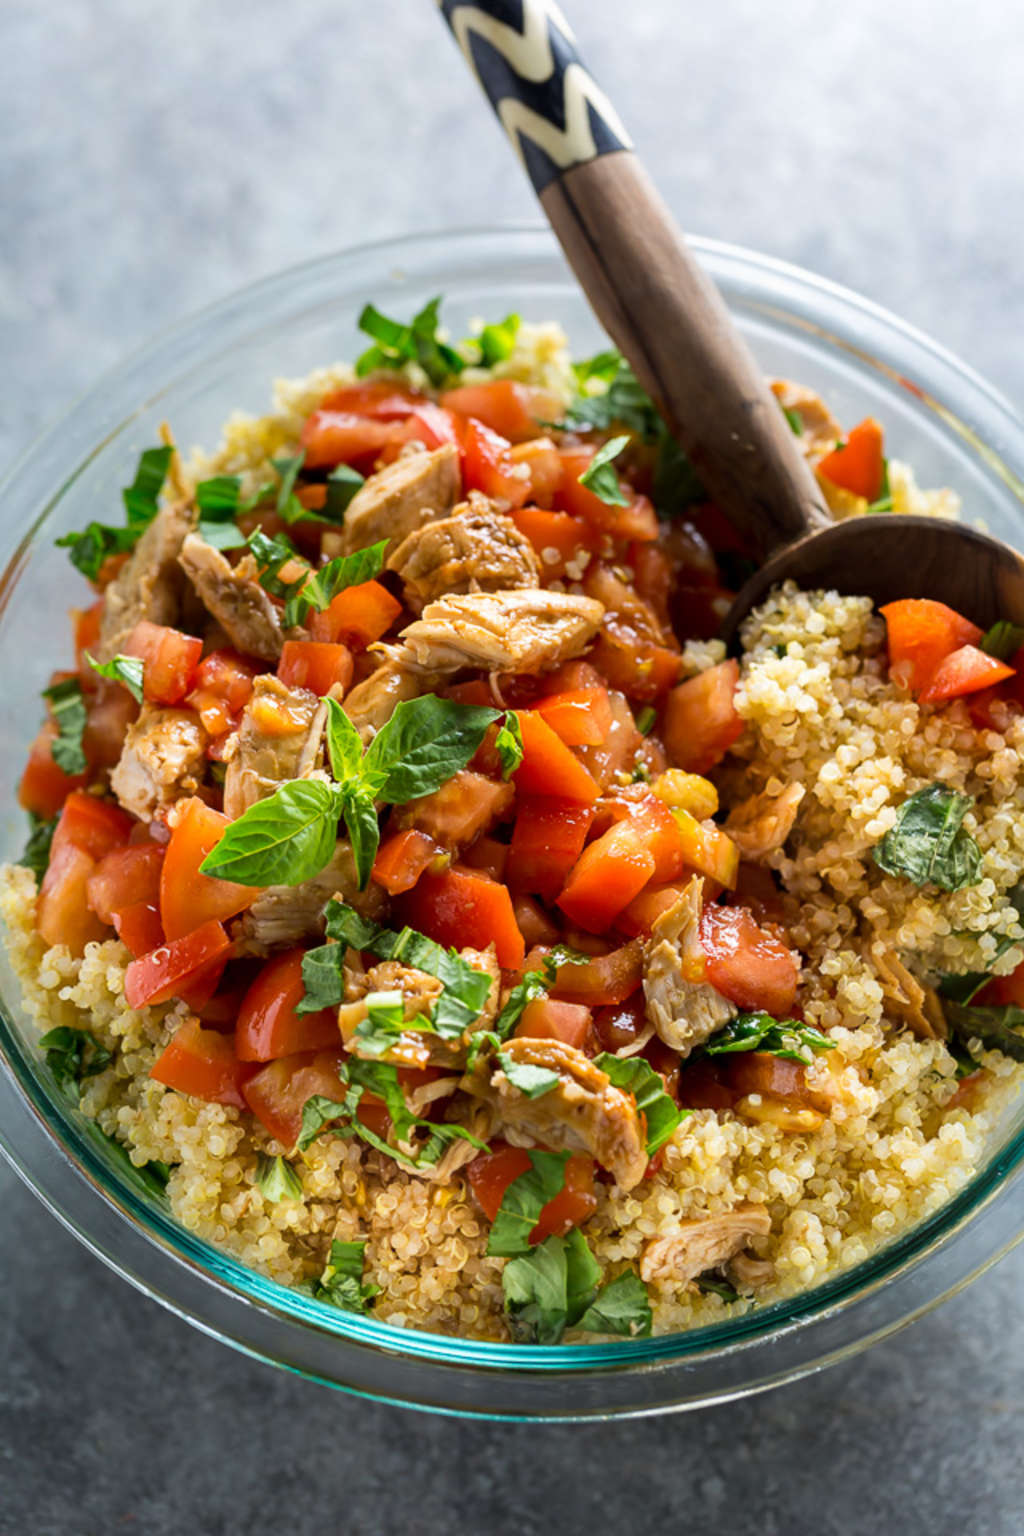 Got 20 Minutes? Then You Can Make This Chicken & Quinoa Salad.